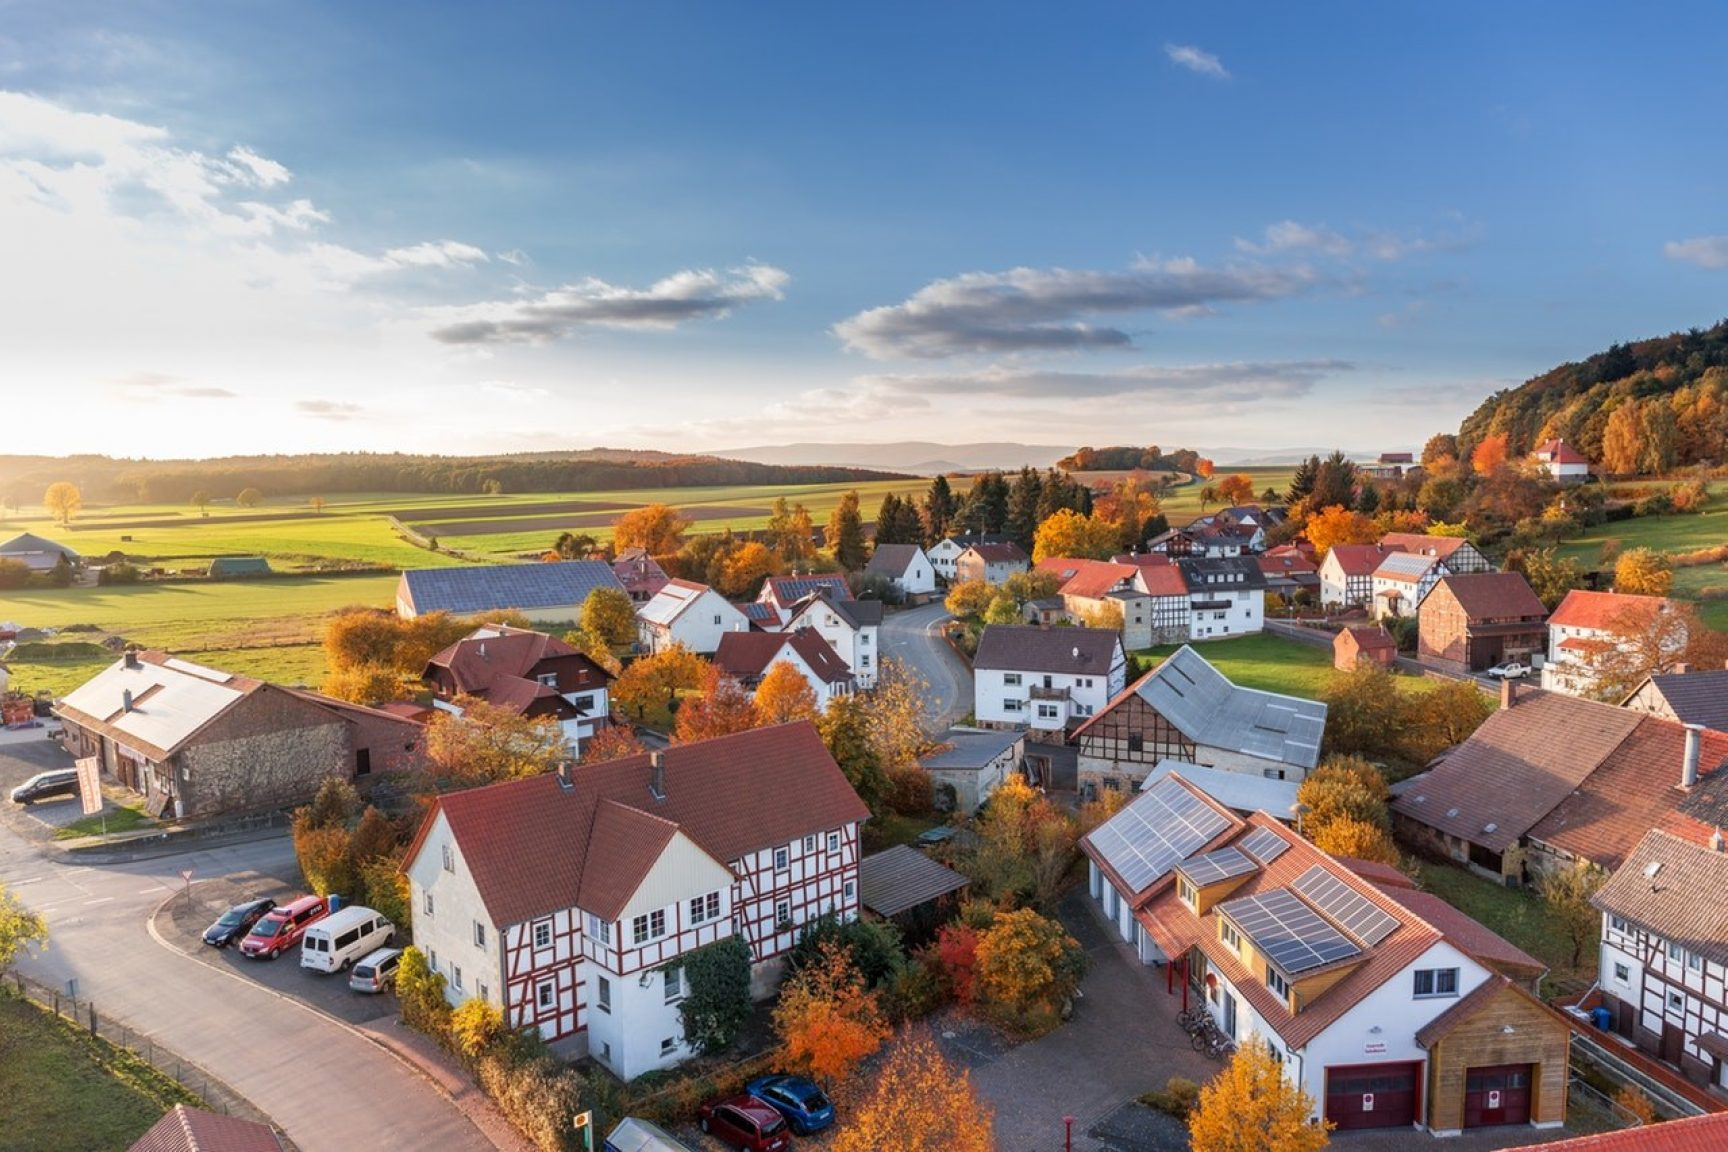 An aerial view of a small village in the countryside. The sun is rising in the distance.